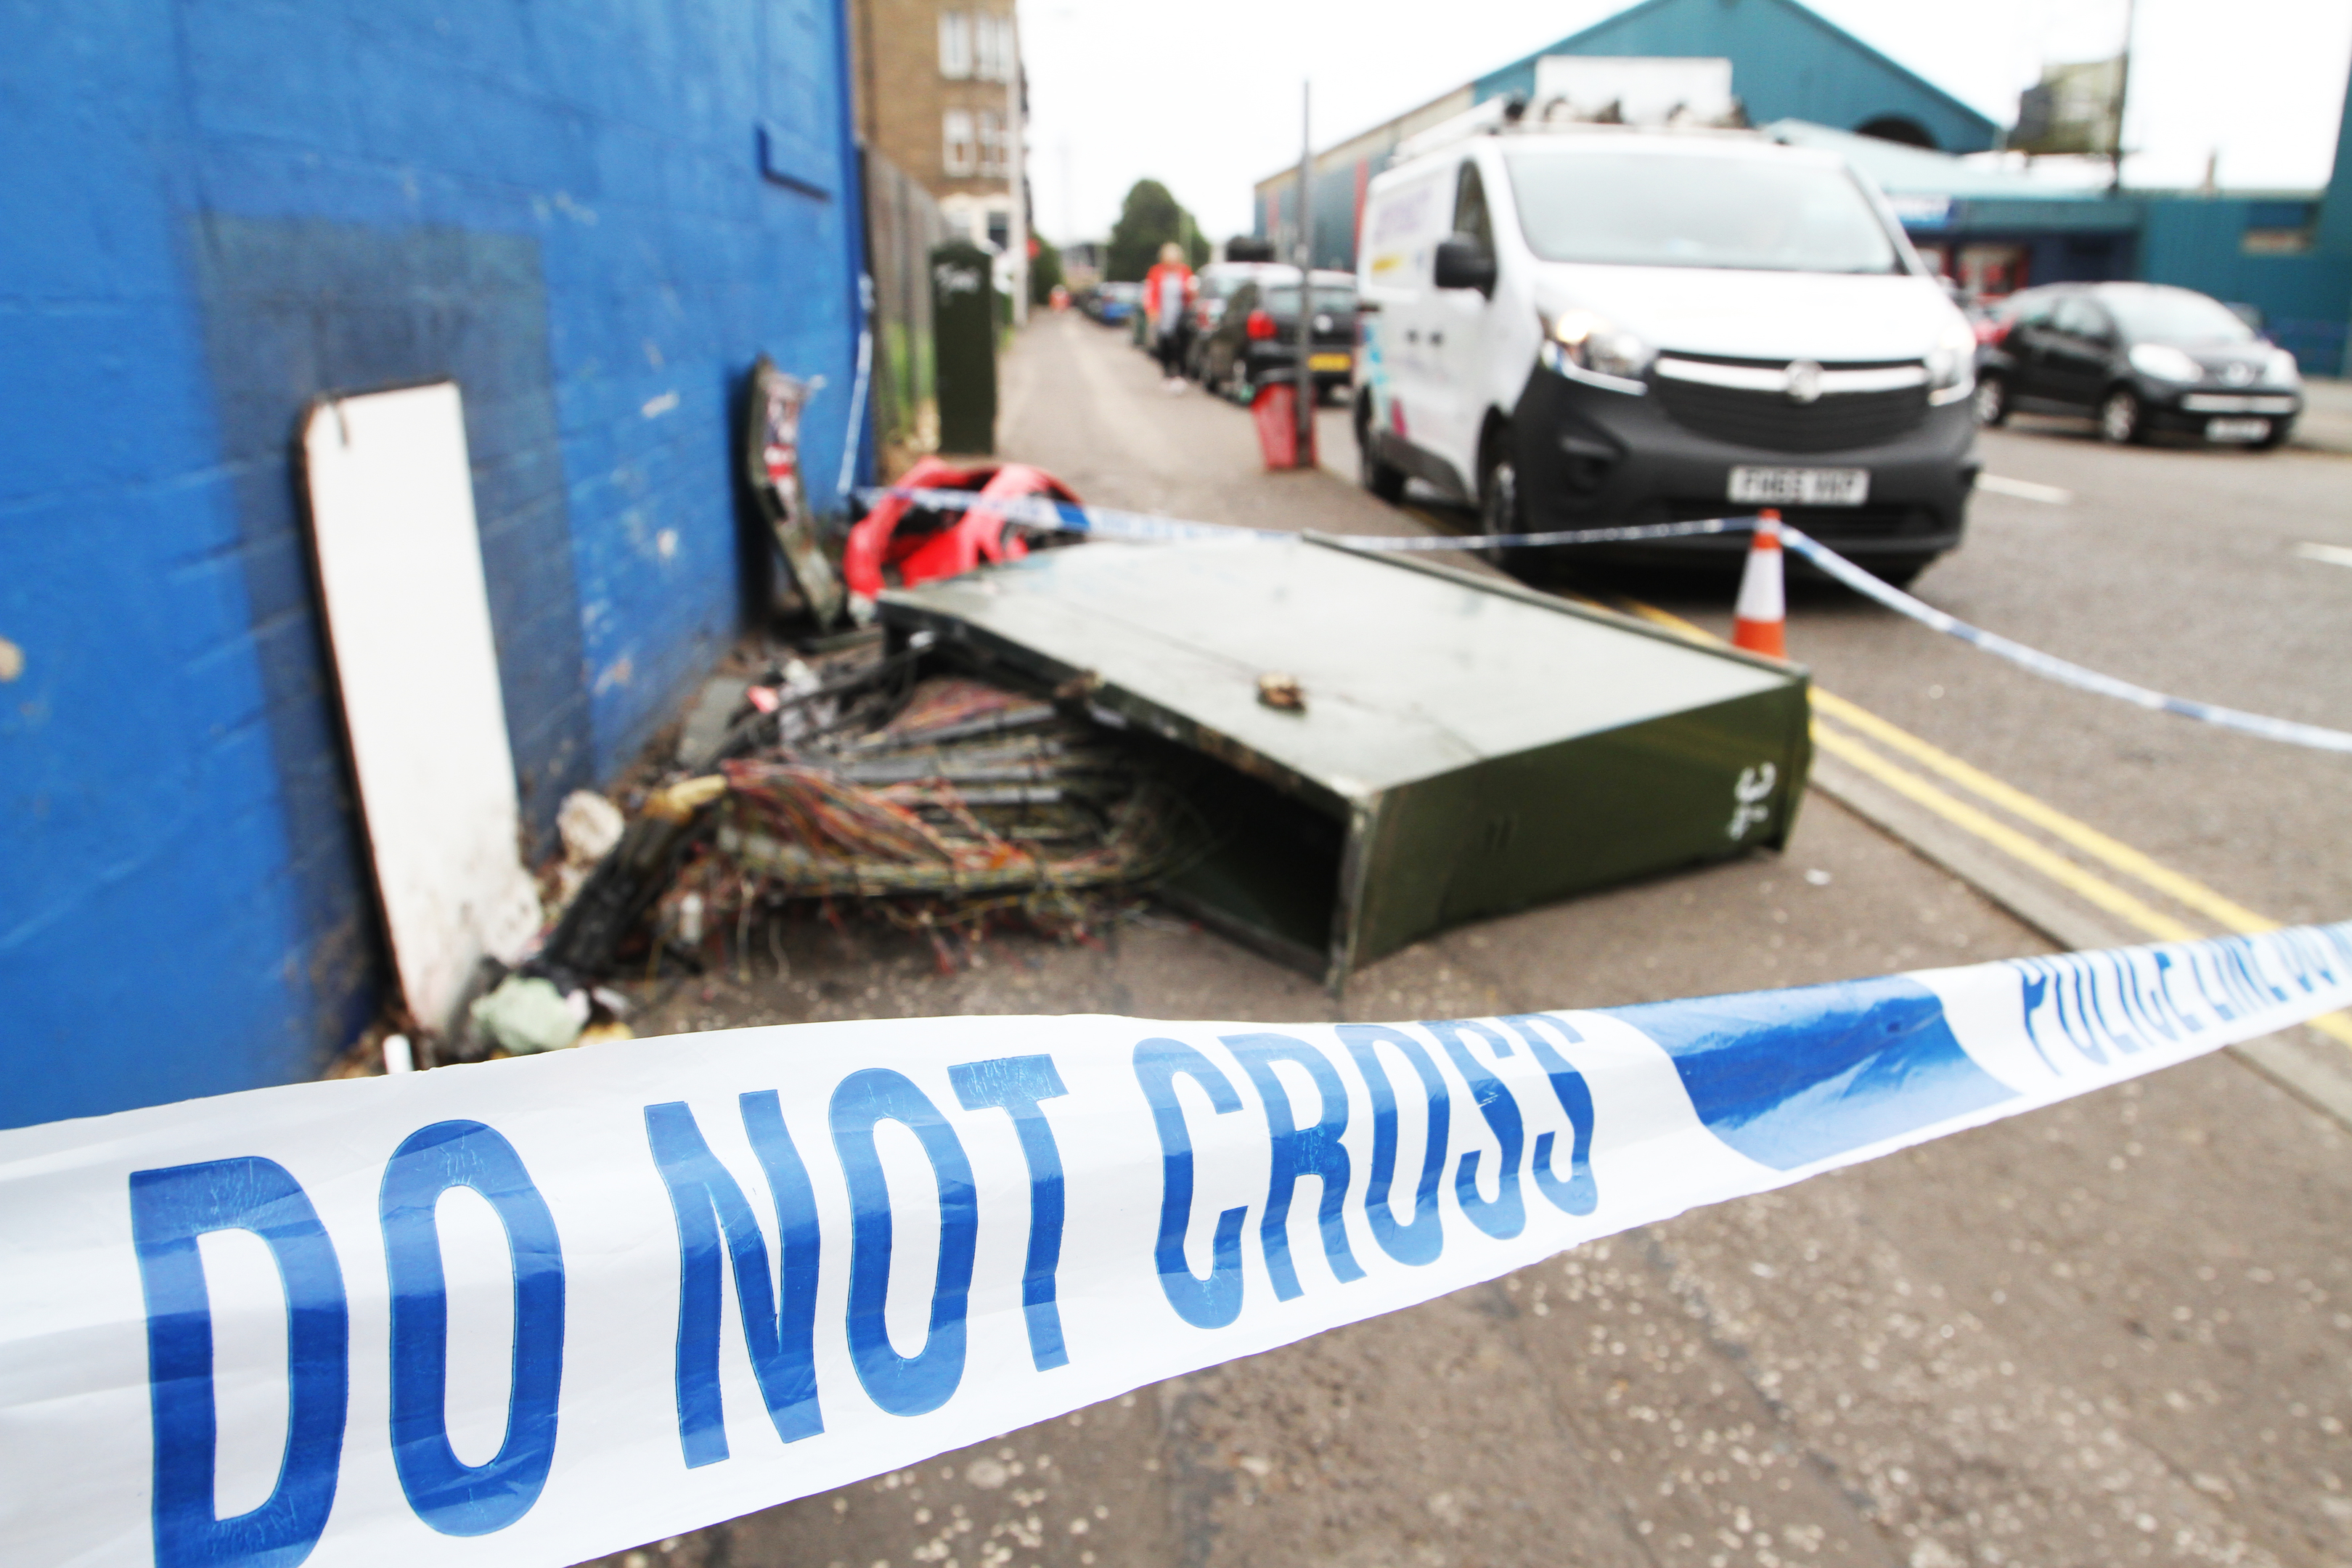 The BT box on Sandeman Street was wiped out, leaving residents including Dundee Football Club without internet.